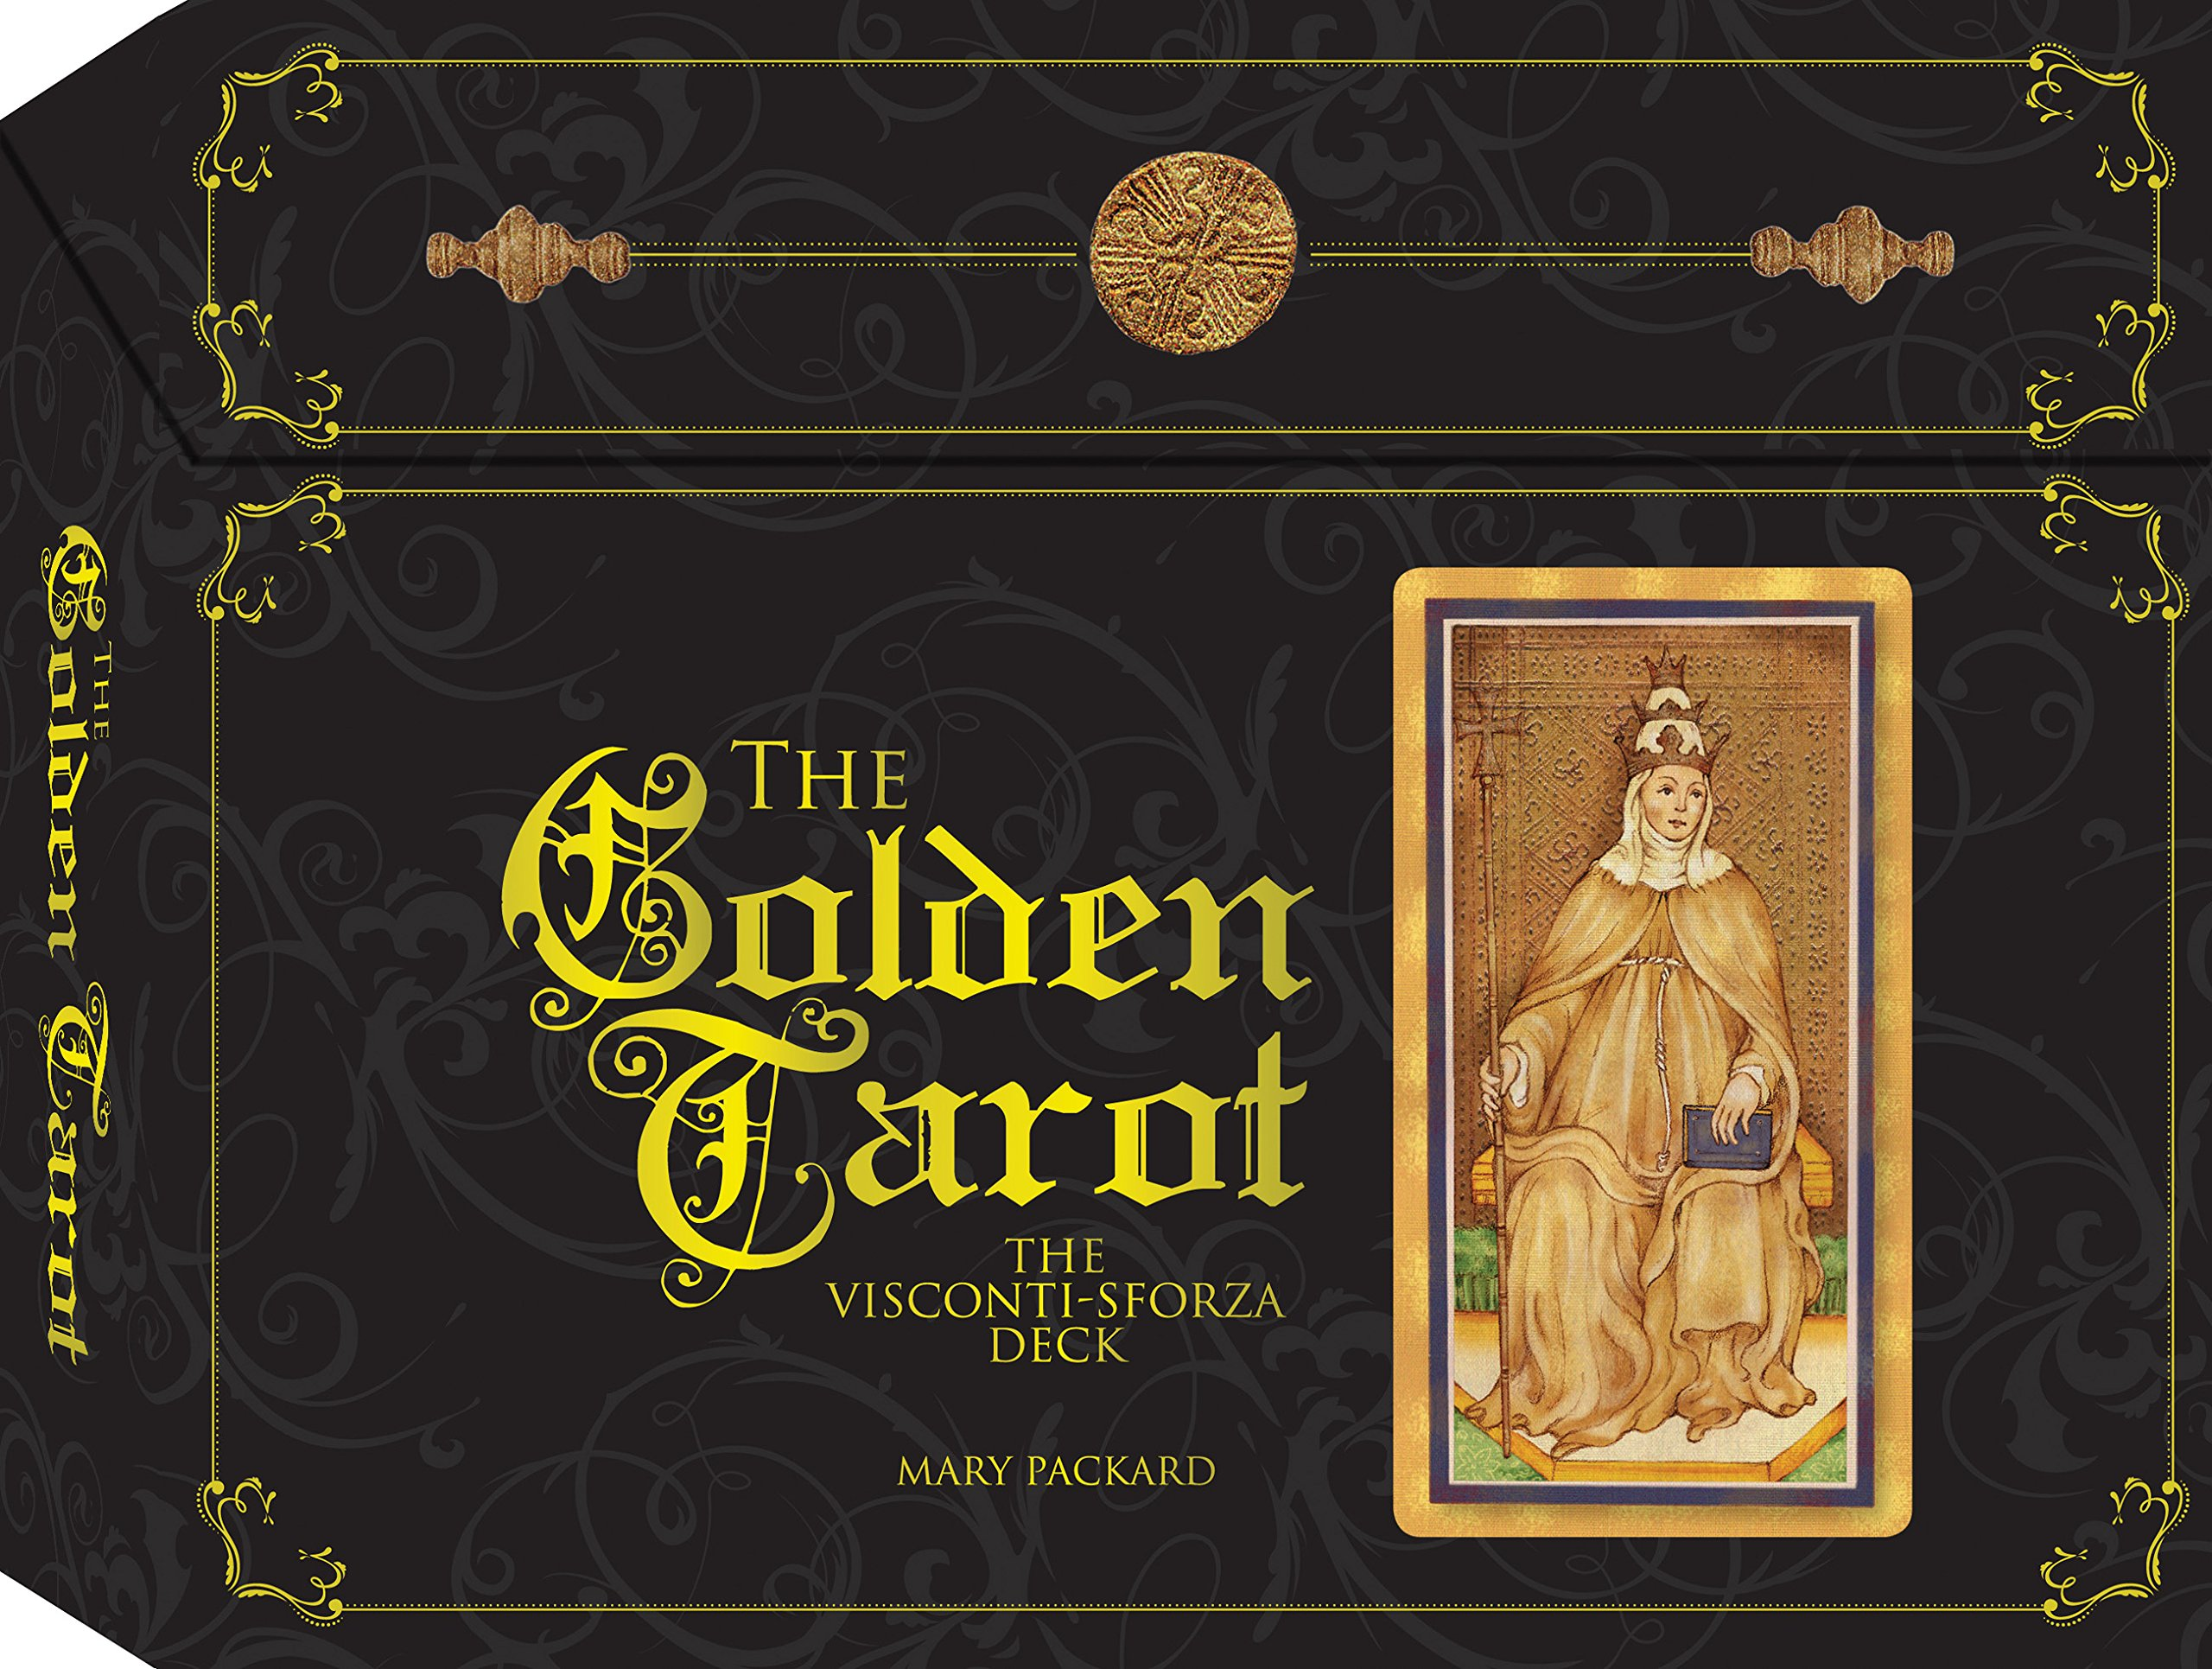 The Golden Tarot of Visconti: Sforza Deck: Amazon.es: Mary ...